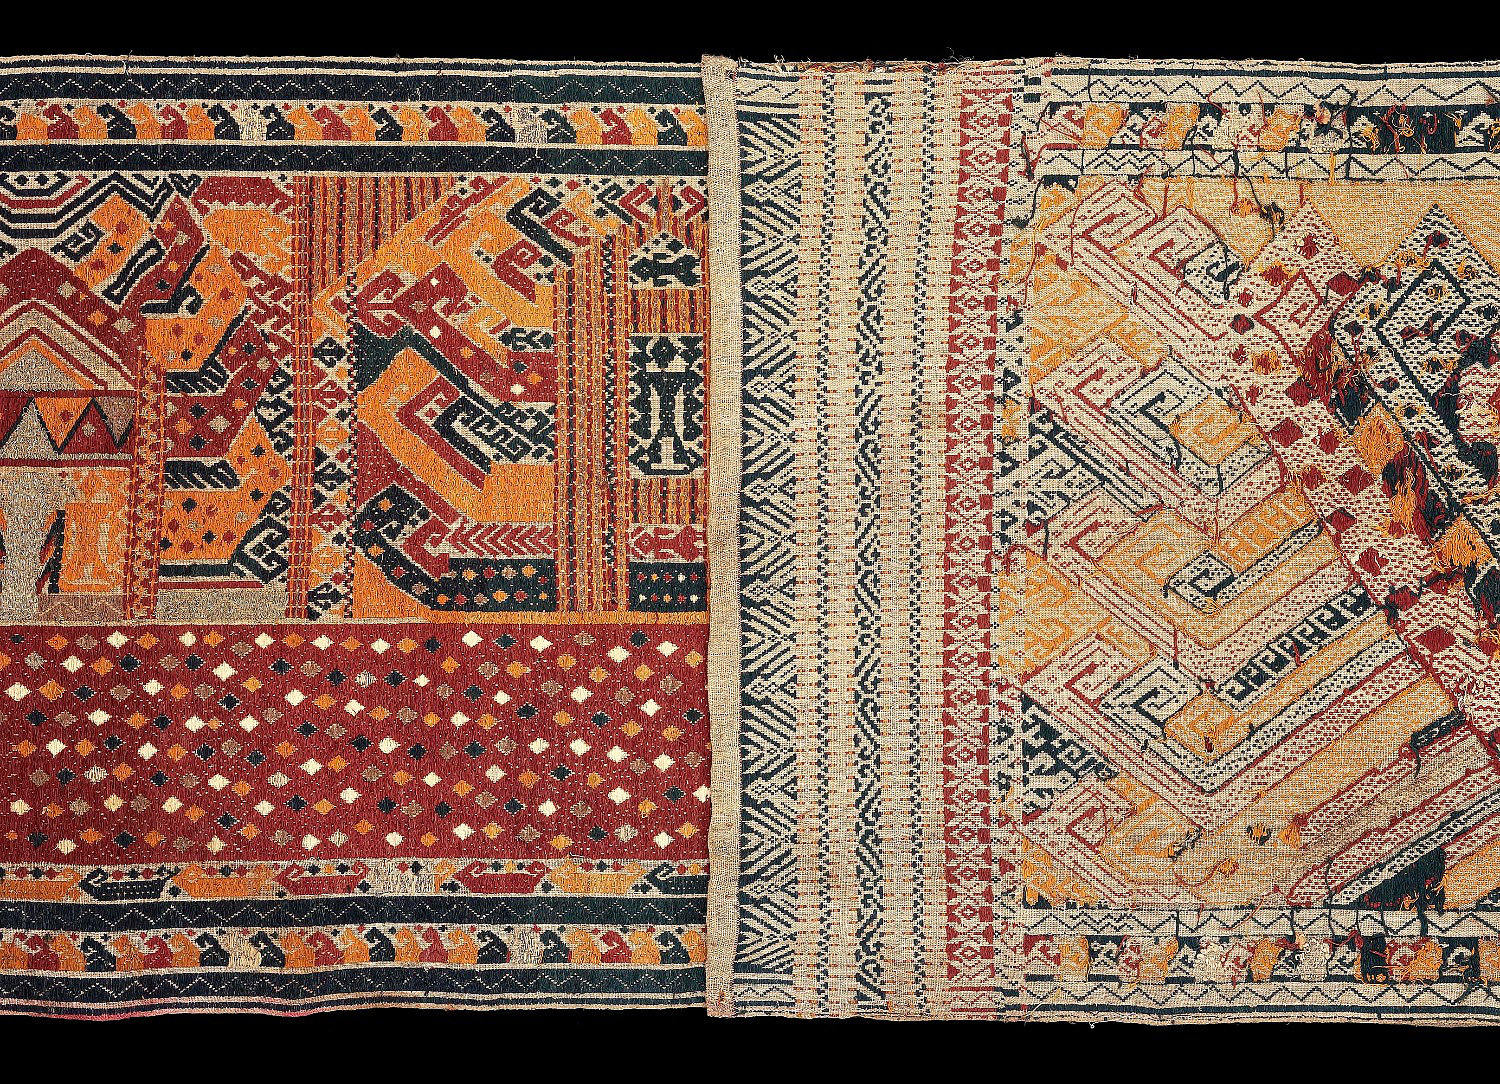 Detail of 1850-1900 long Palepi, ceremonial hanging.  Made of cotton with colored thread and gold thread supplementary weft pattern of figures on large red ship. All natural dyes. Pammingir people, Kota Agung, Lampung, south Sumatra, Indonesia.   303 X 58 cm   Samyama  Collection.